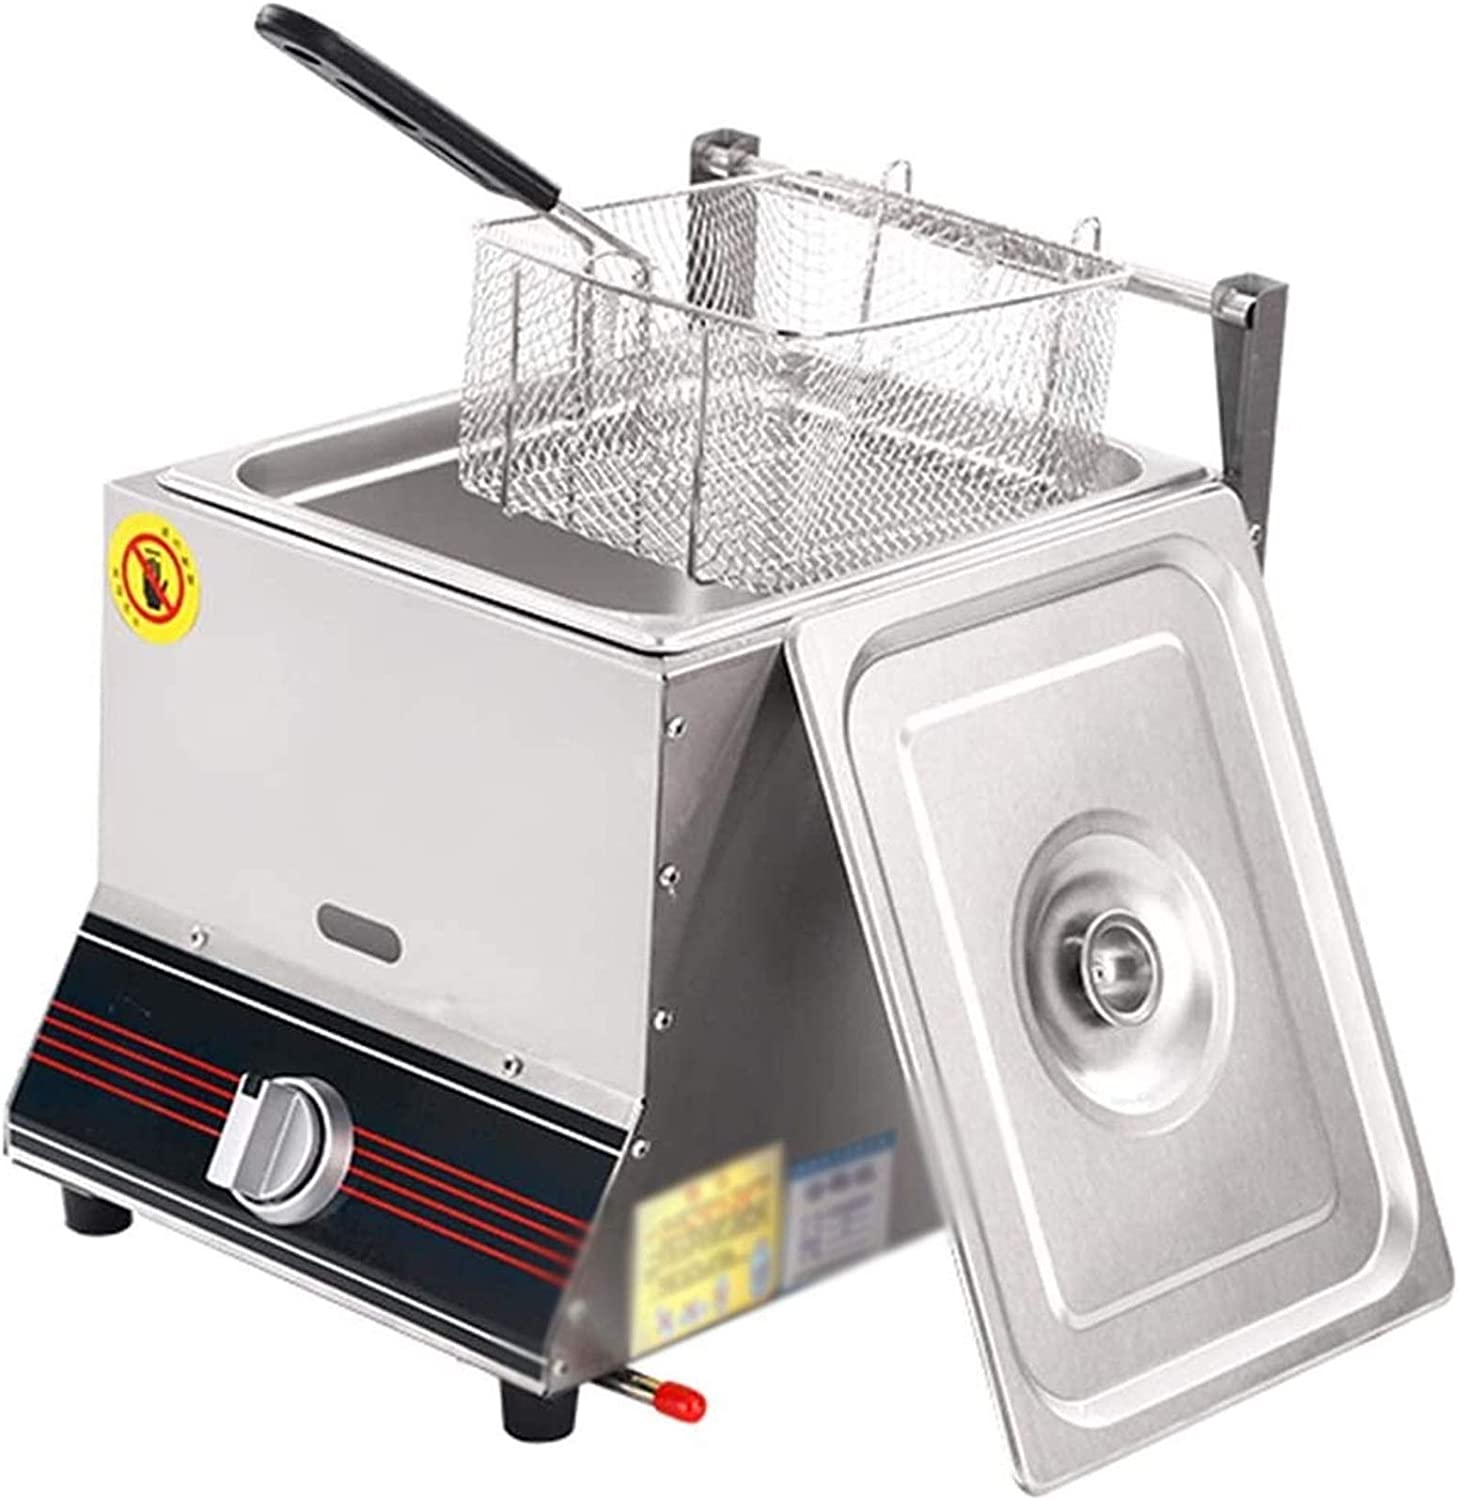 Electric Deep Fryer Countertop Oil Fryer,Stainless Steel Gas Fryers Fried Potato Pan With Temperature Control Pulse Ignition And Seasoning Rack For Home And Commercial 1111